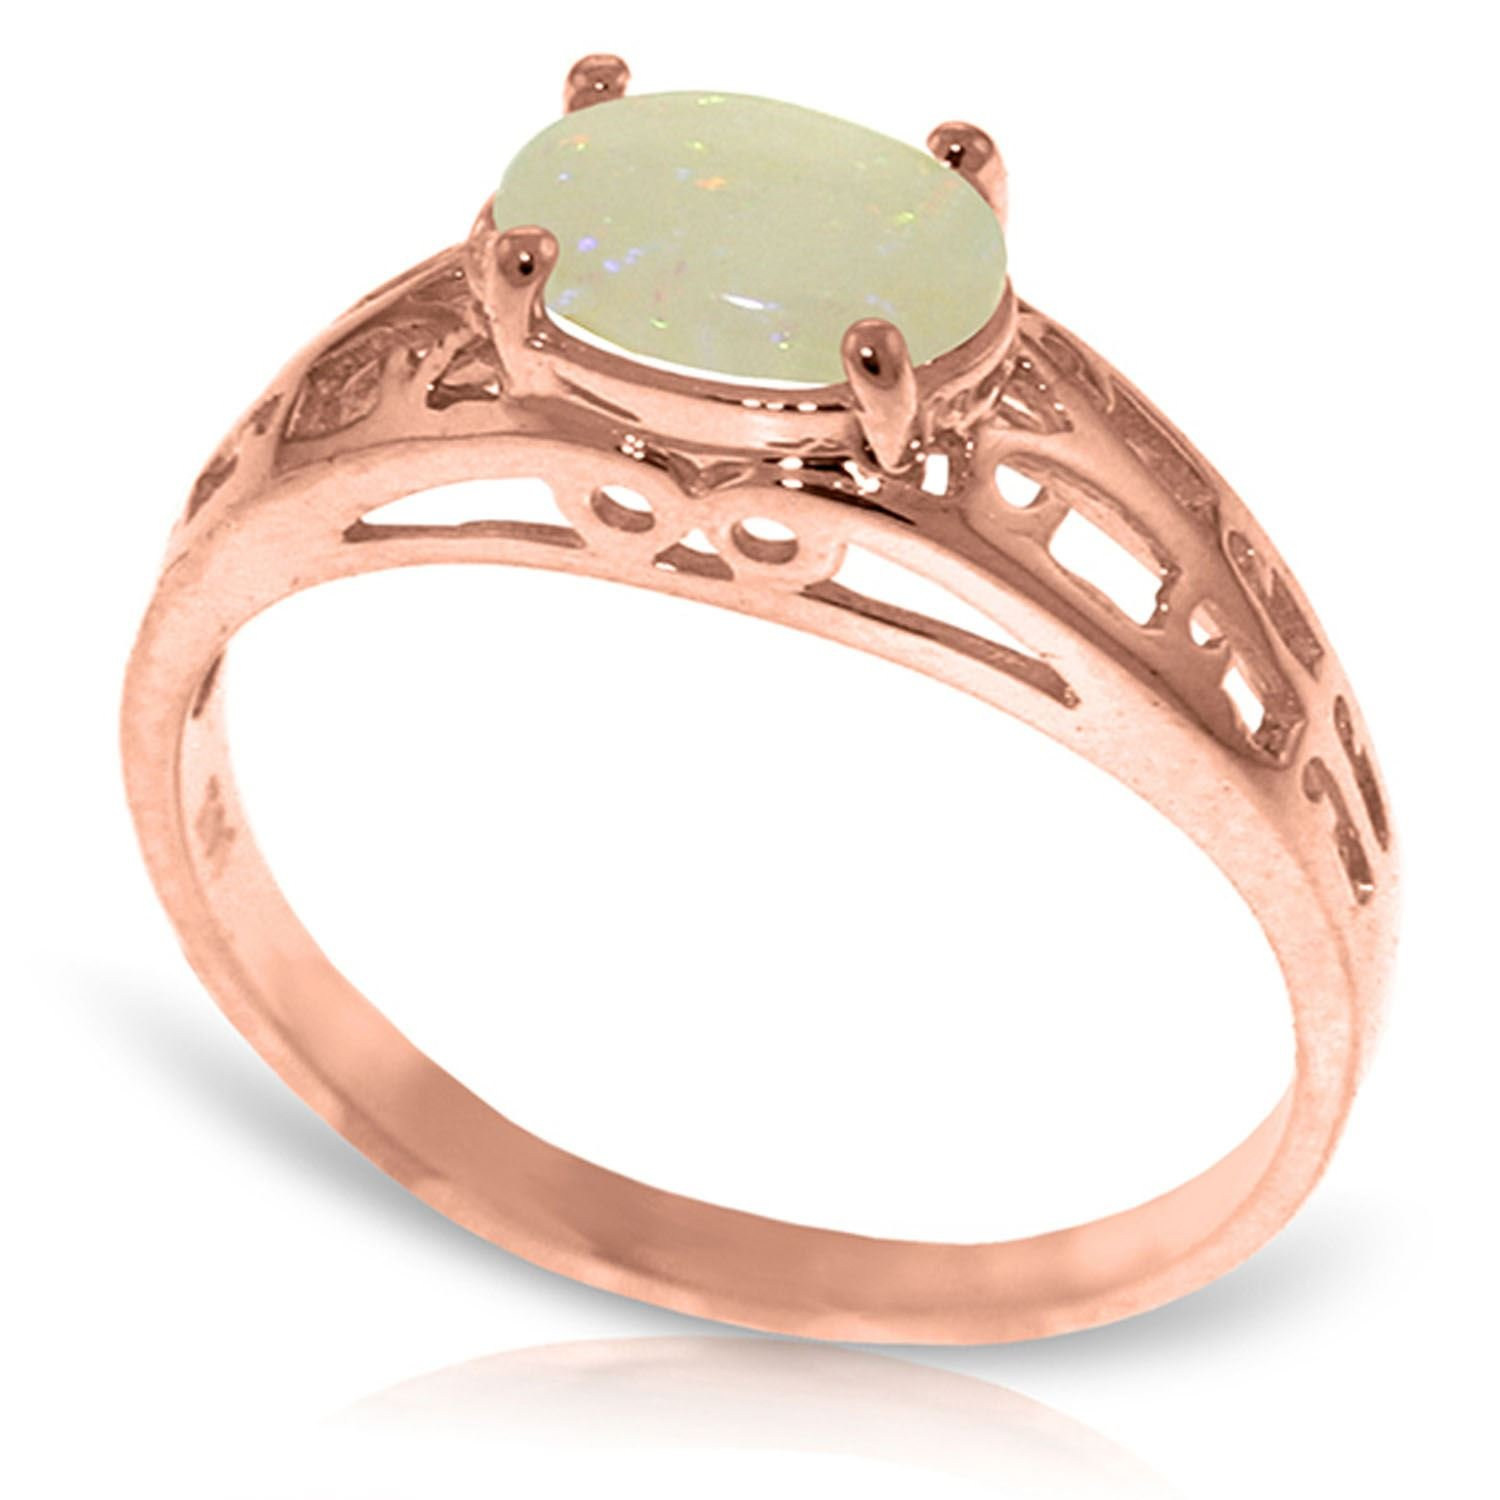 ALARRI 14K Solid Rose Gold Filigree Ring w/ Natural Opal With Ring Size 10